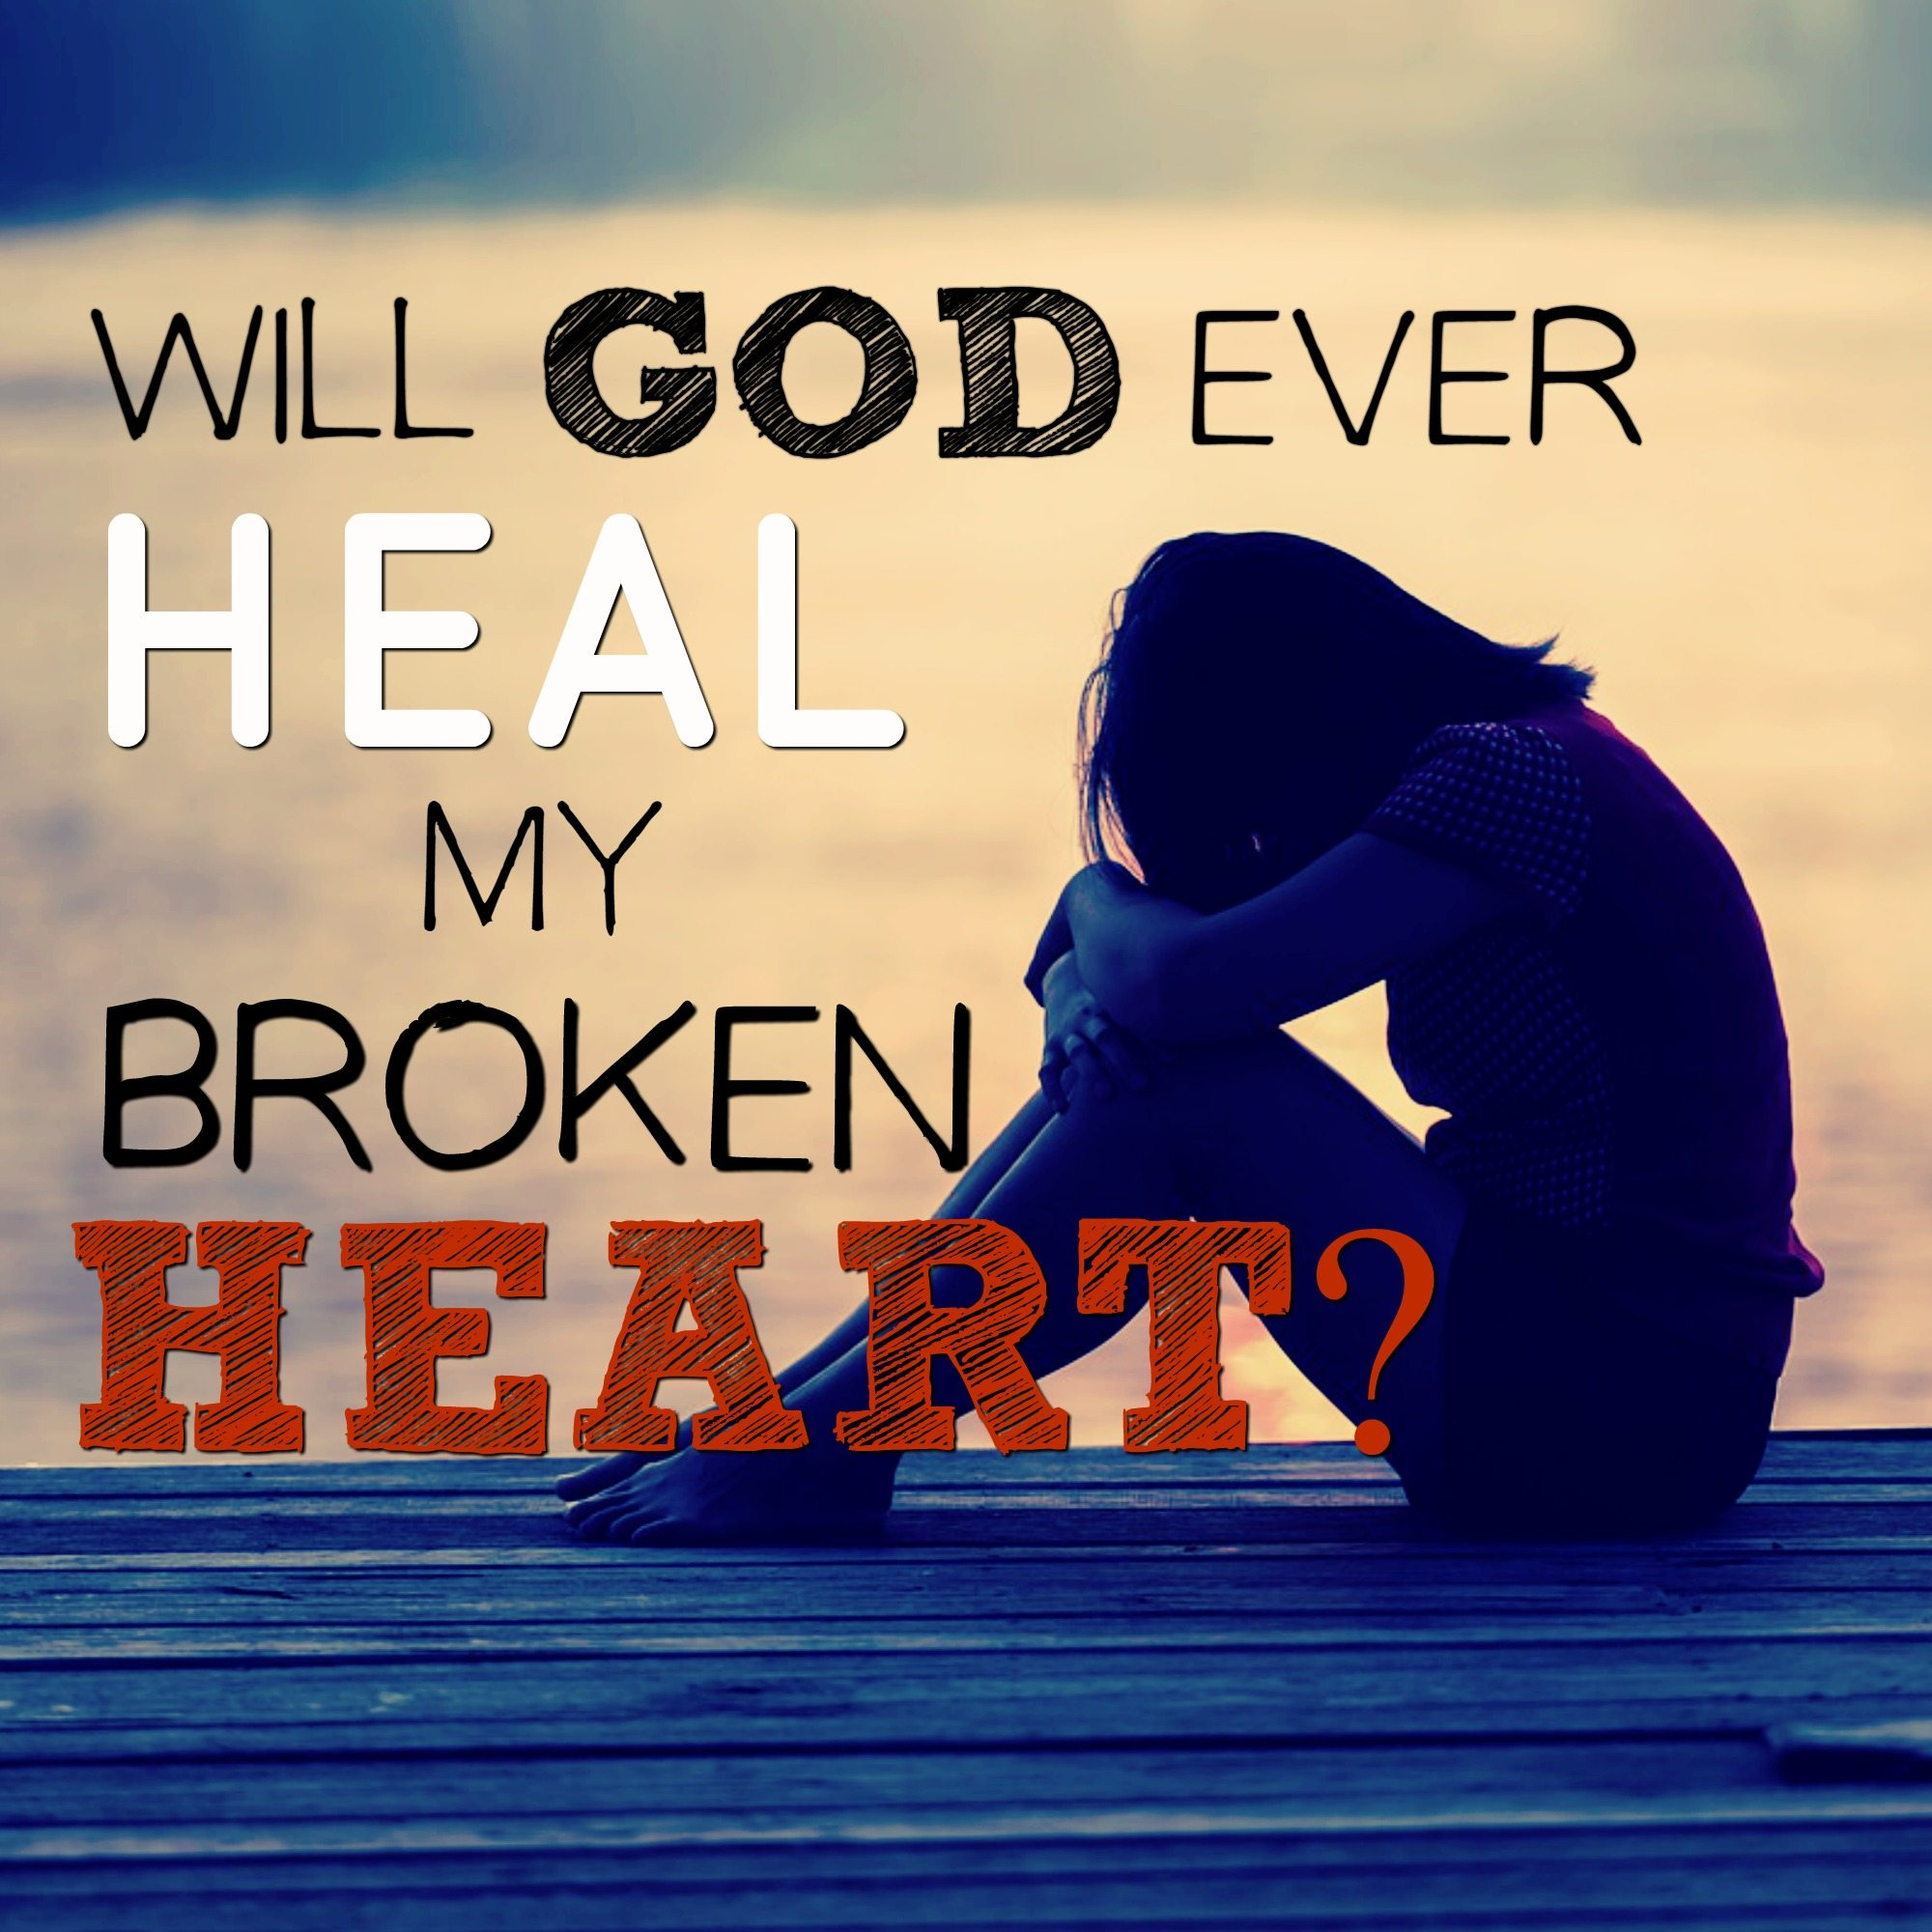 Will God Ever Heal My Broken Heart?